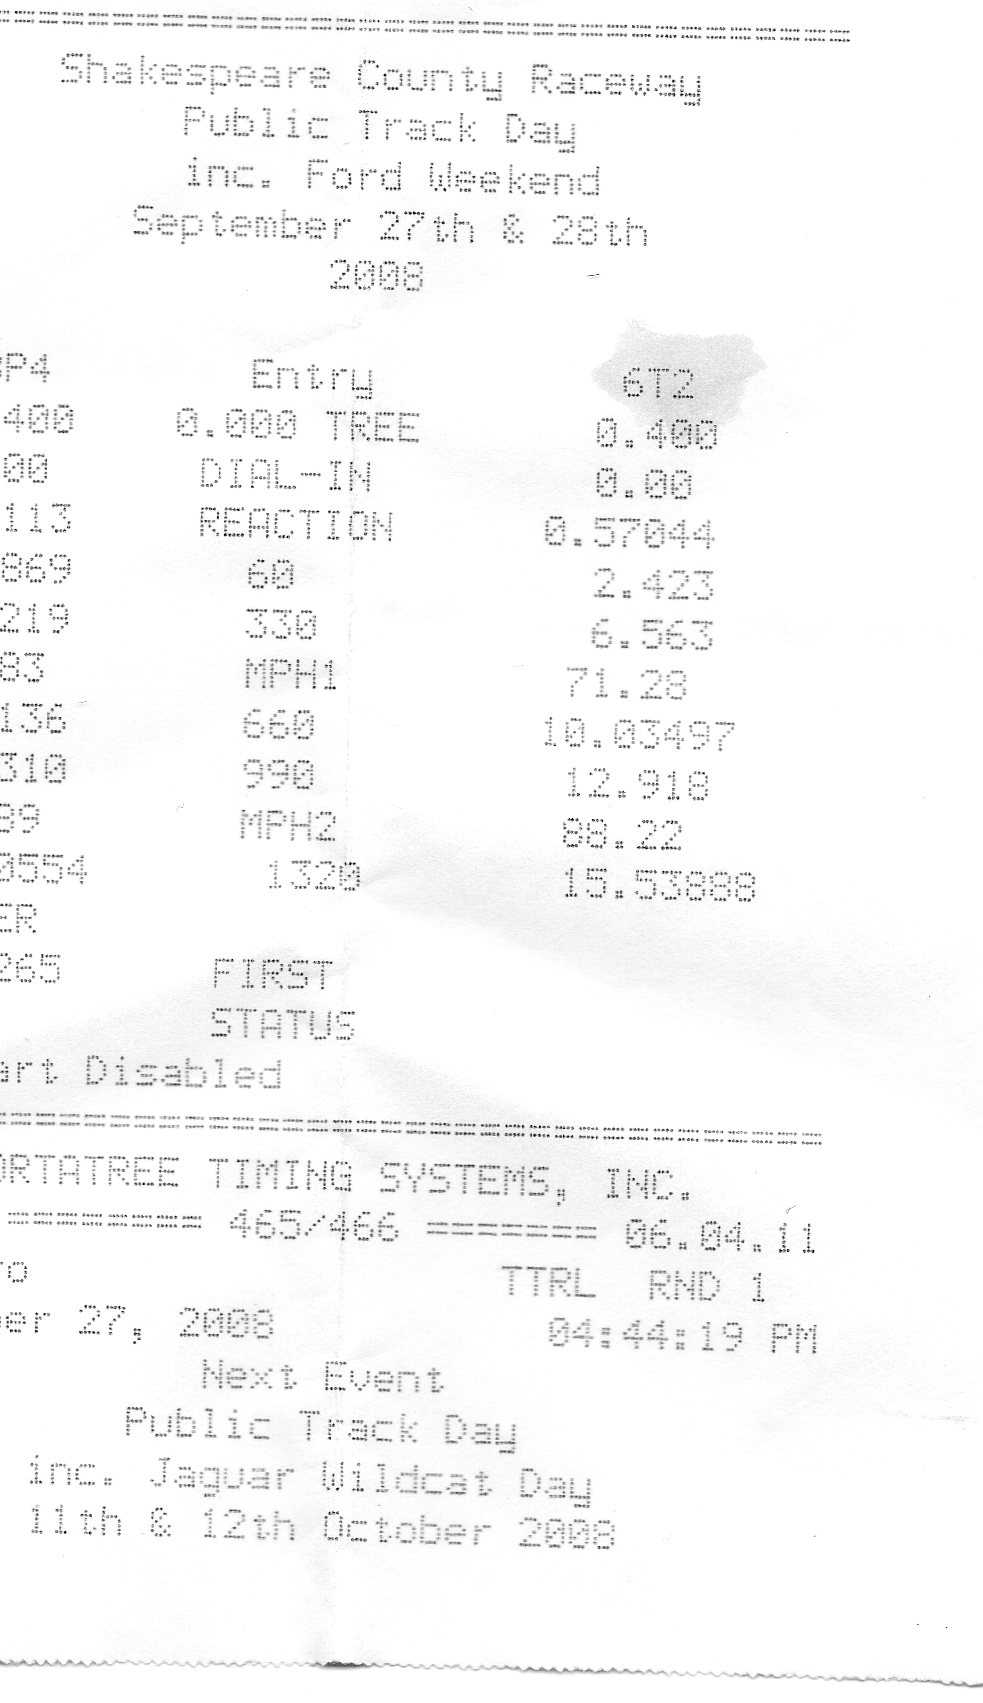 2004 Pontiac Grand Am SE V6 Timeslip Scan